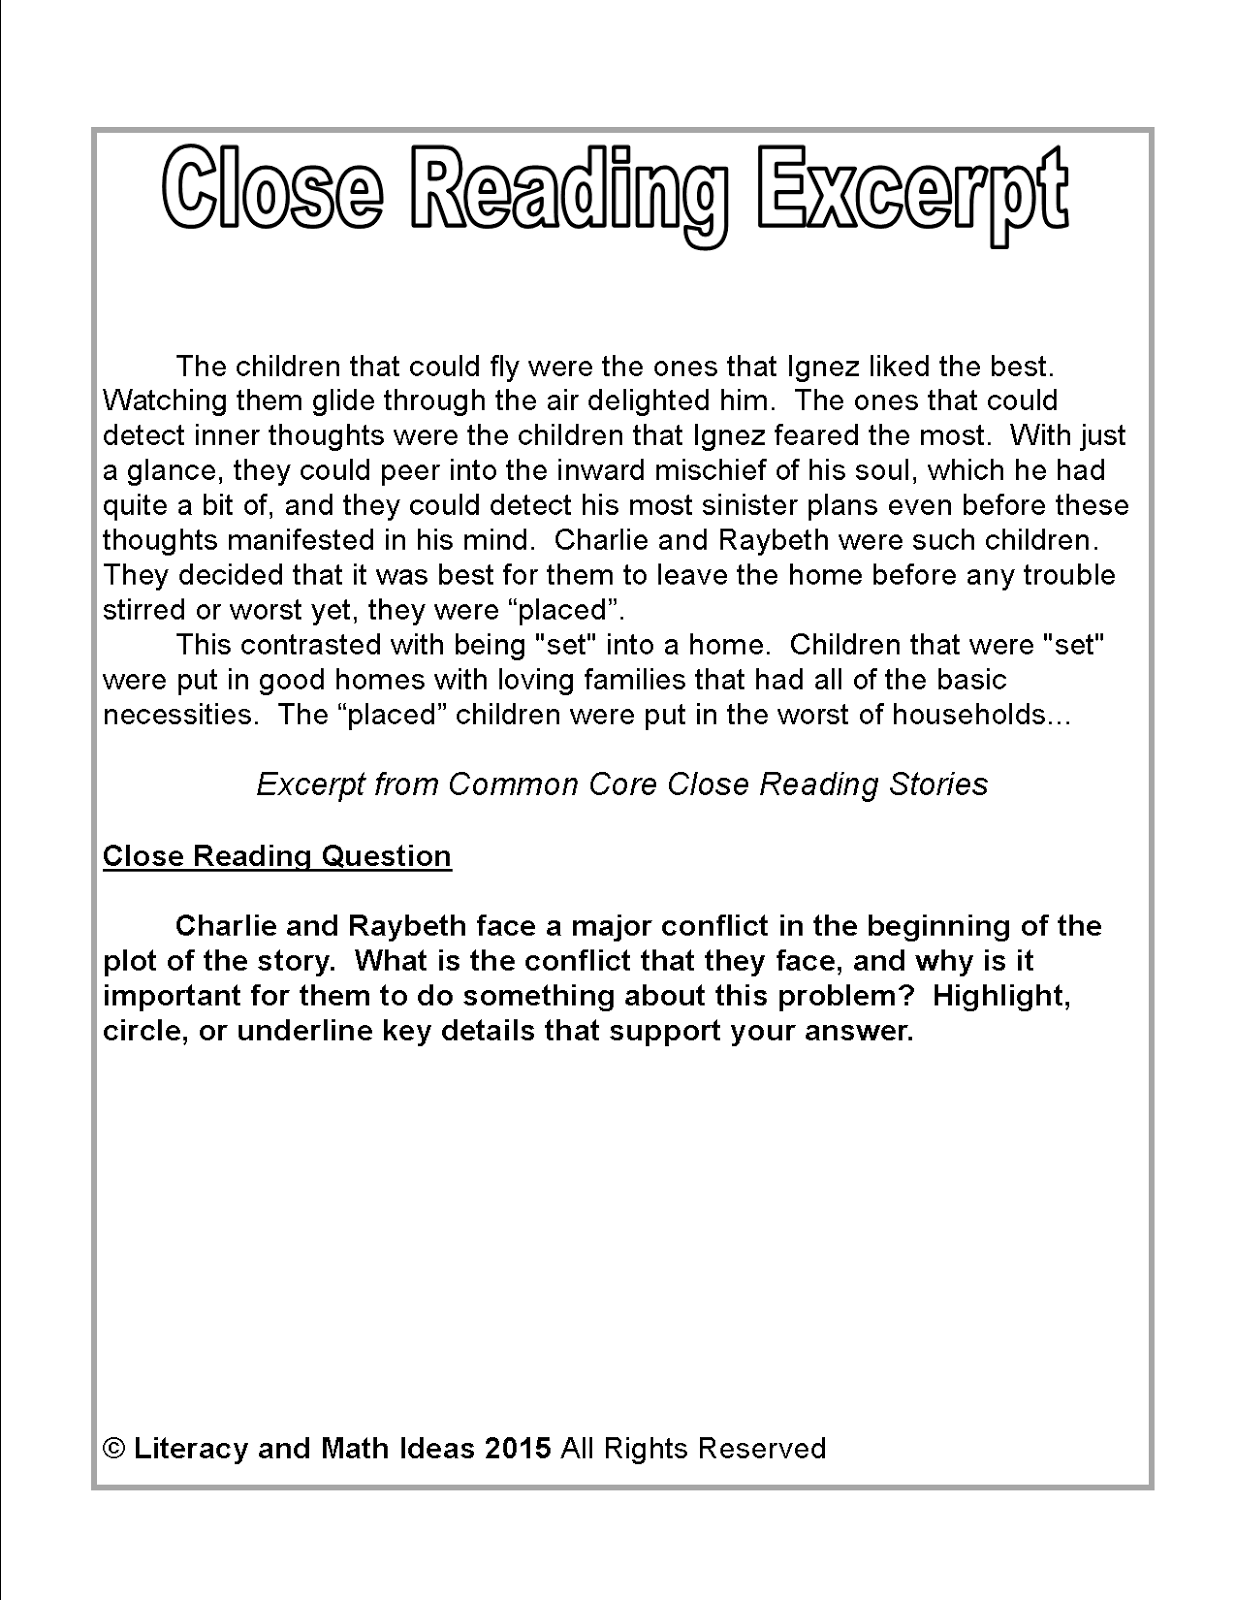 Worksheet 4th Grade Reading Stories literacy math ideas free close reading passage of the week click here to access common core stories